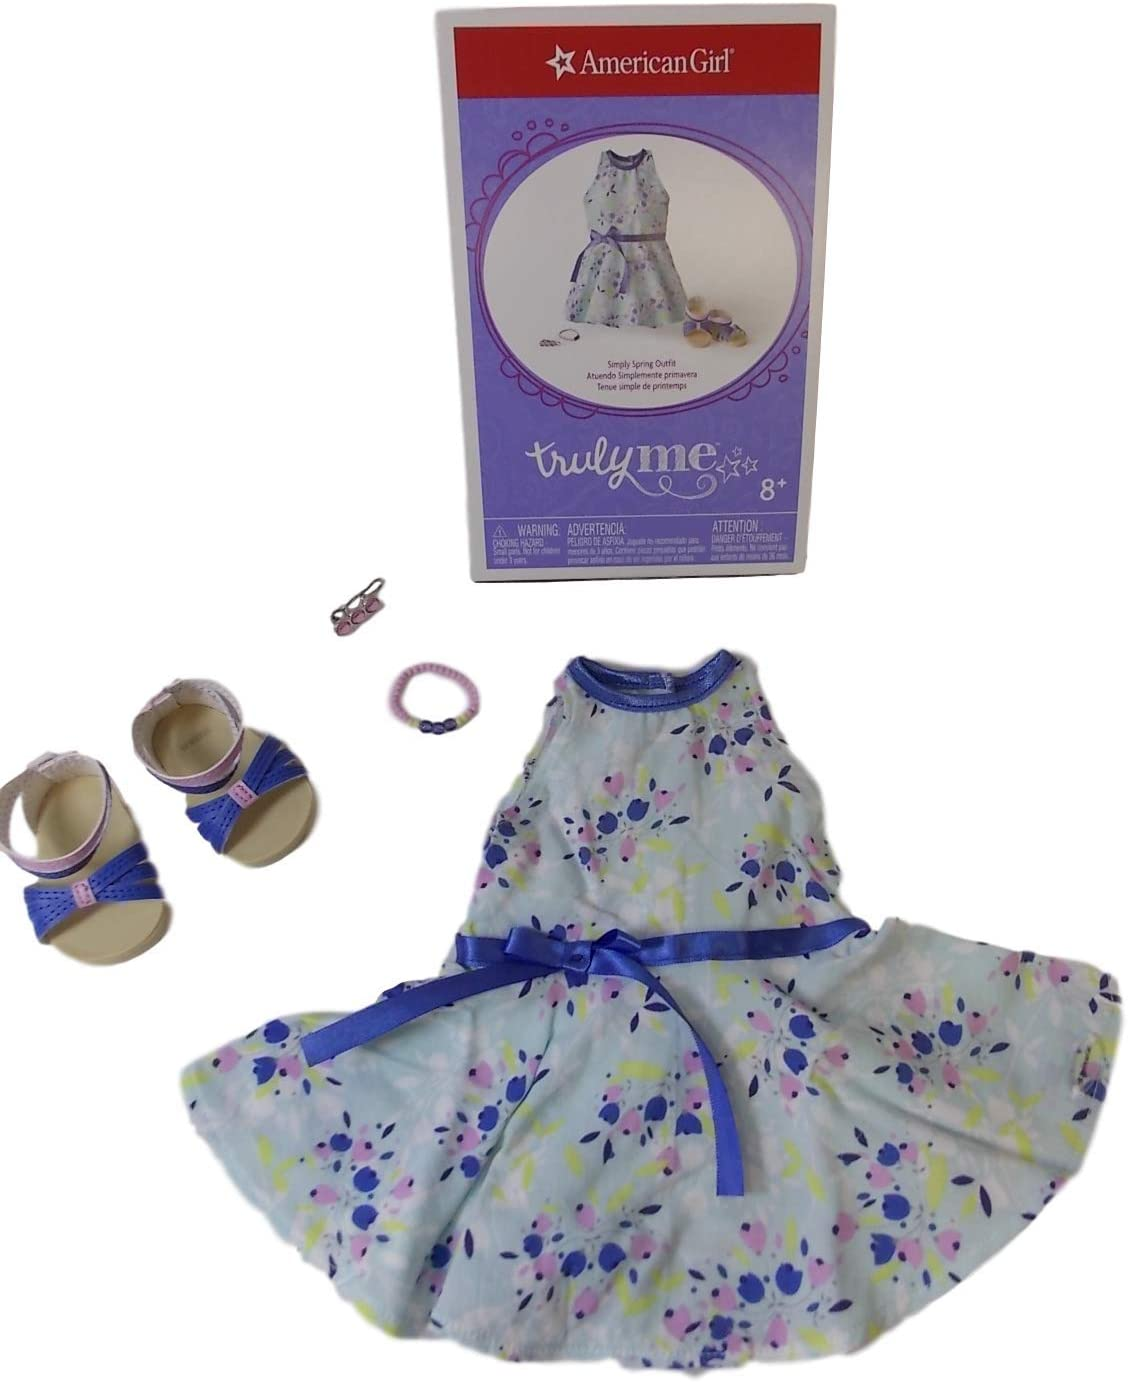 American Girl Simply spring dress outfit sandals NEW Easter